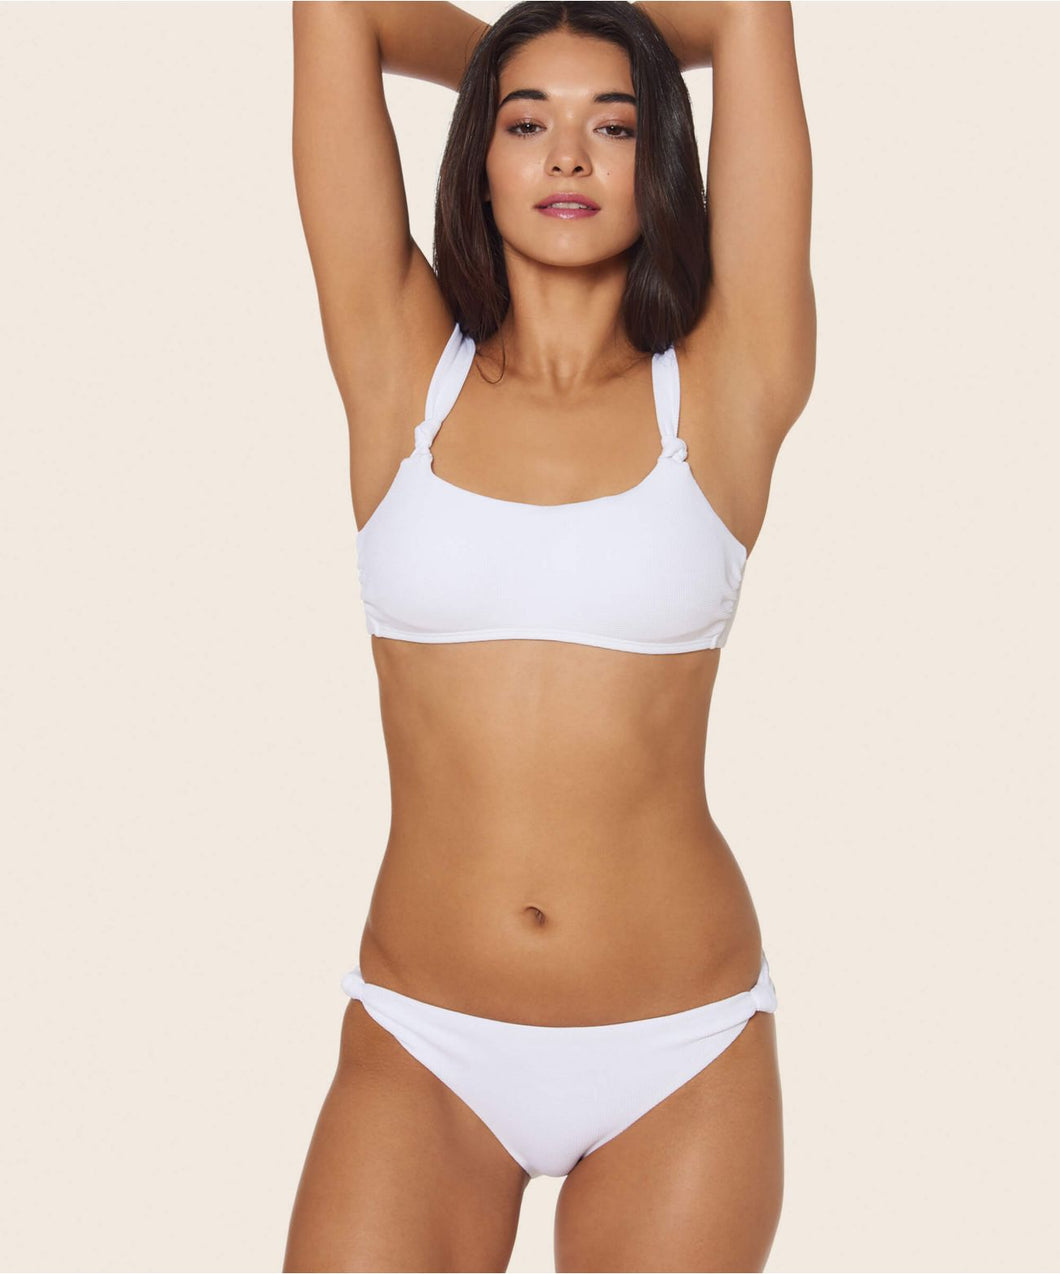 KNOTTY SCOOP BOTTOM WHITE -   Dolce Vita